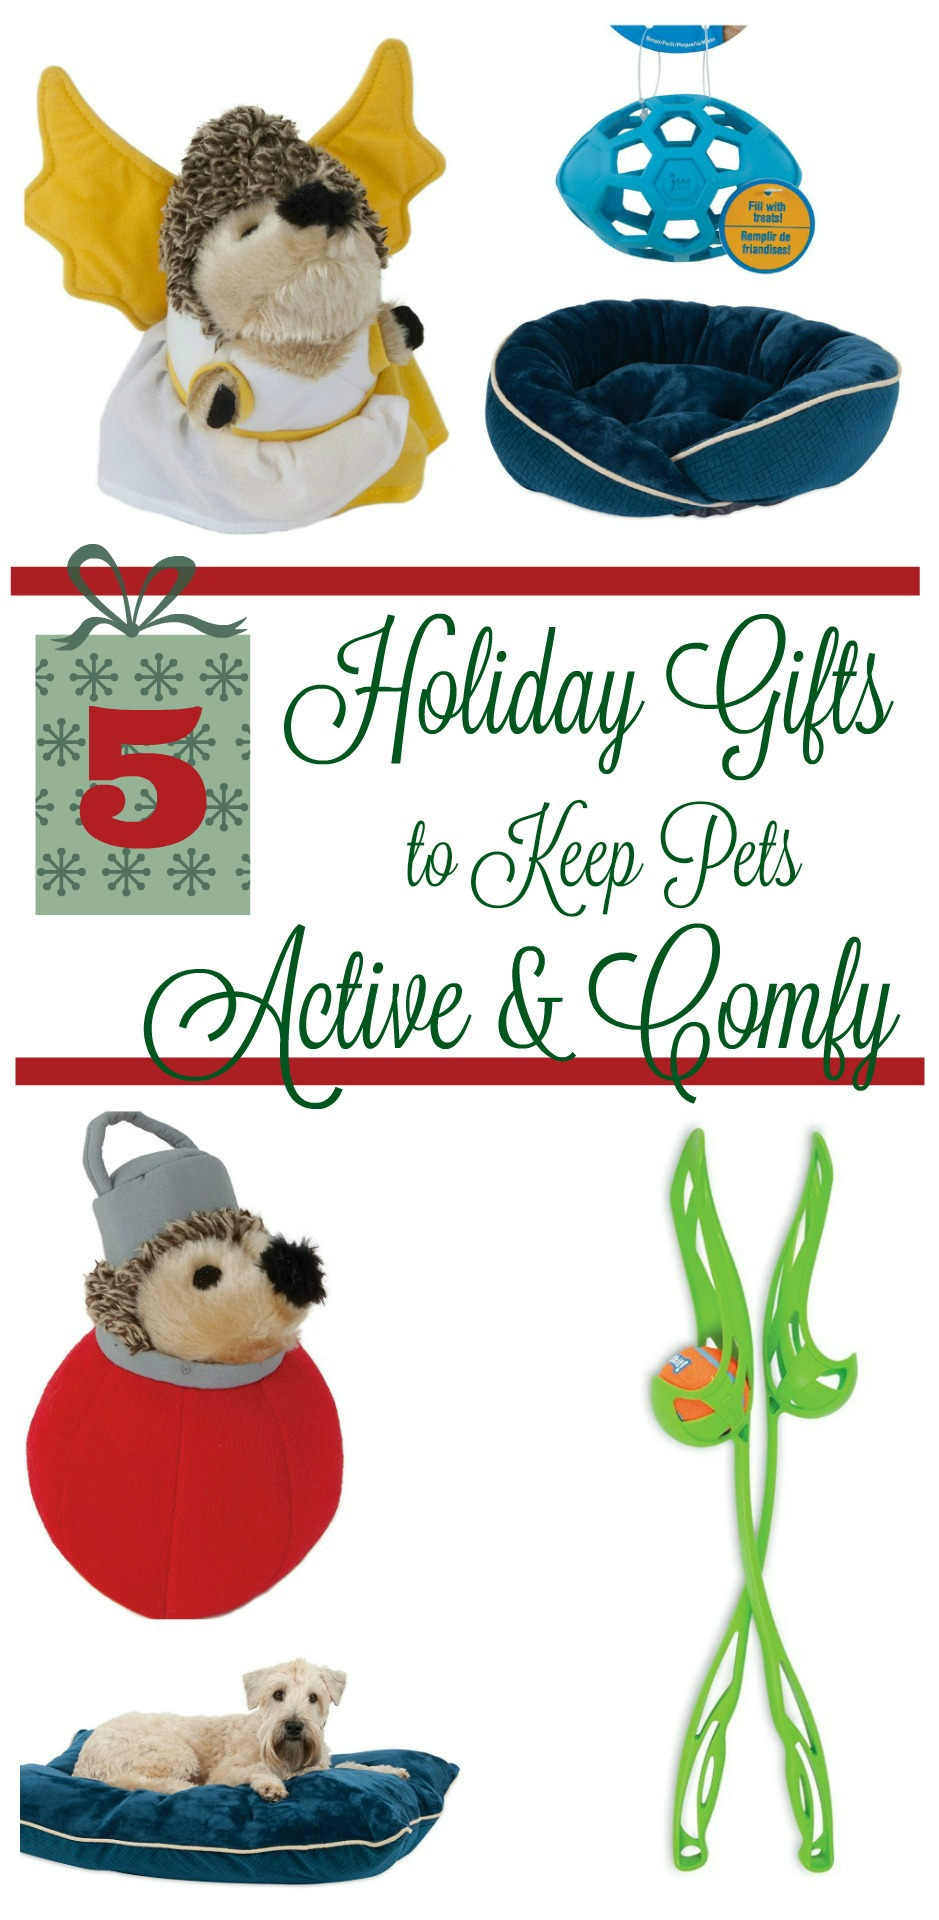 5-holiday-gifts-to-keep-pets-active-comfy